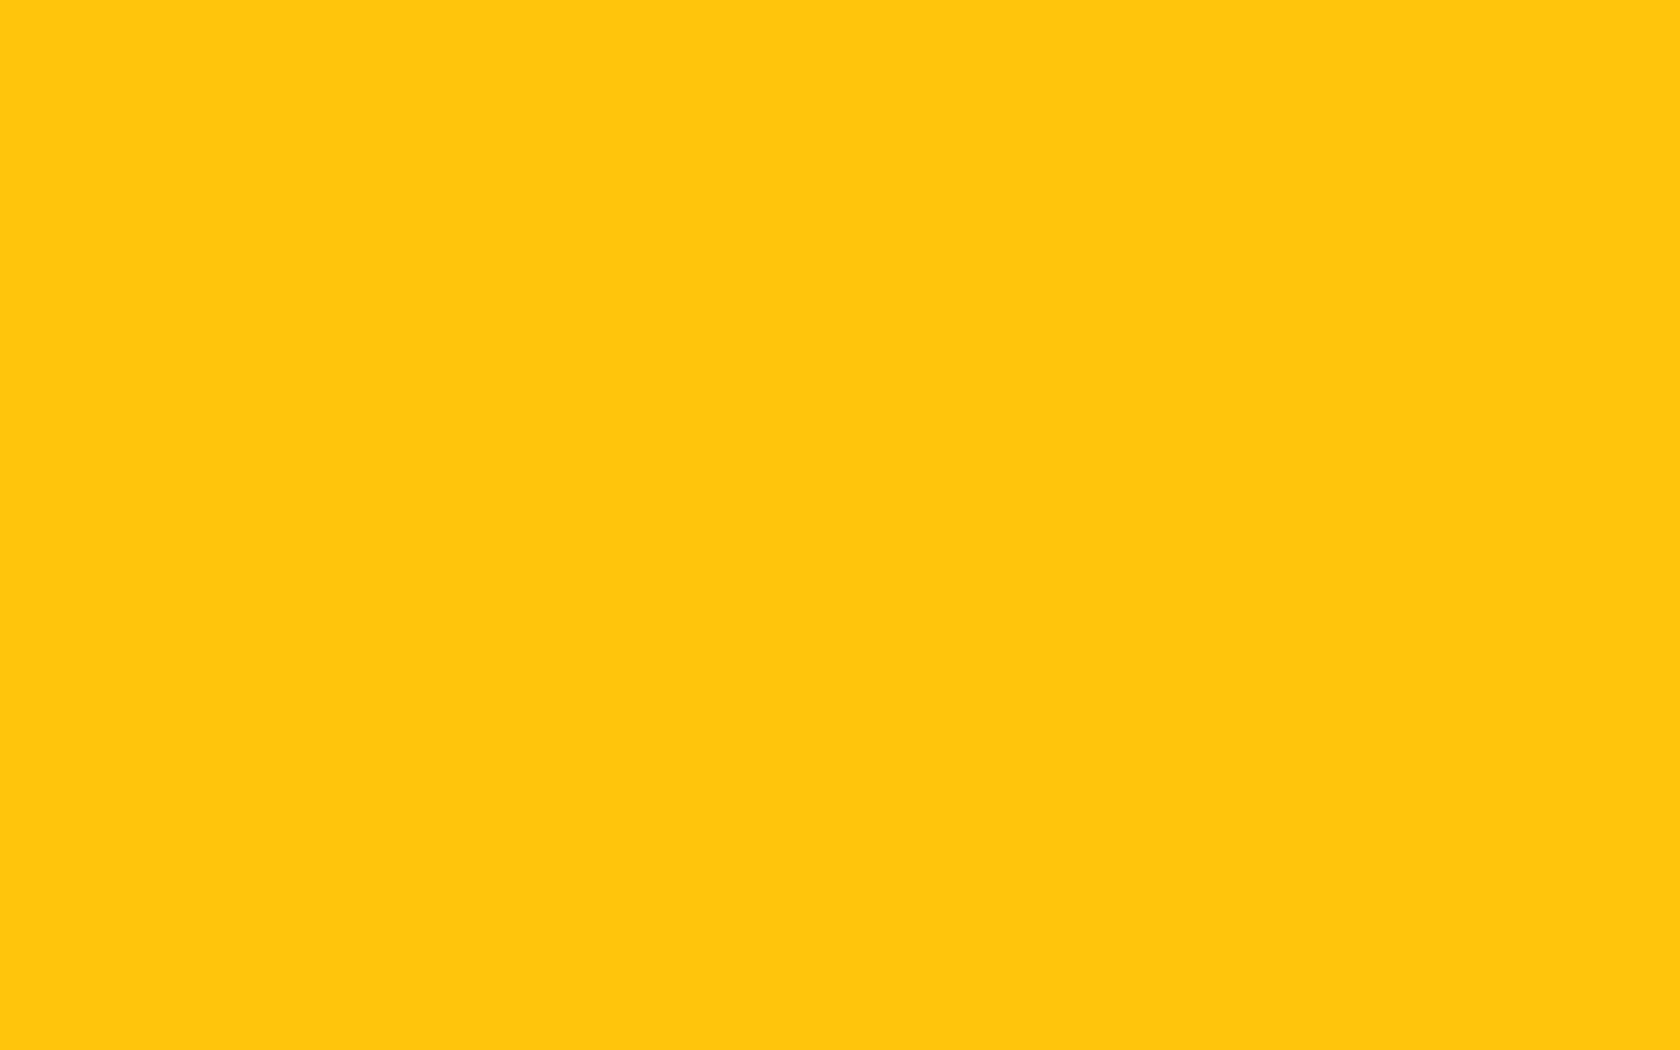 1680x1050 Mikado Yellow Solid Color Background